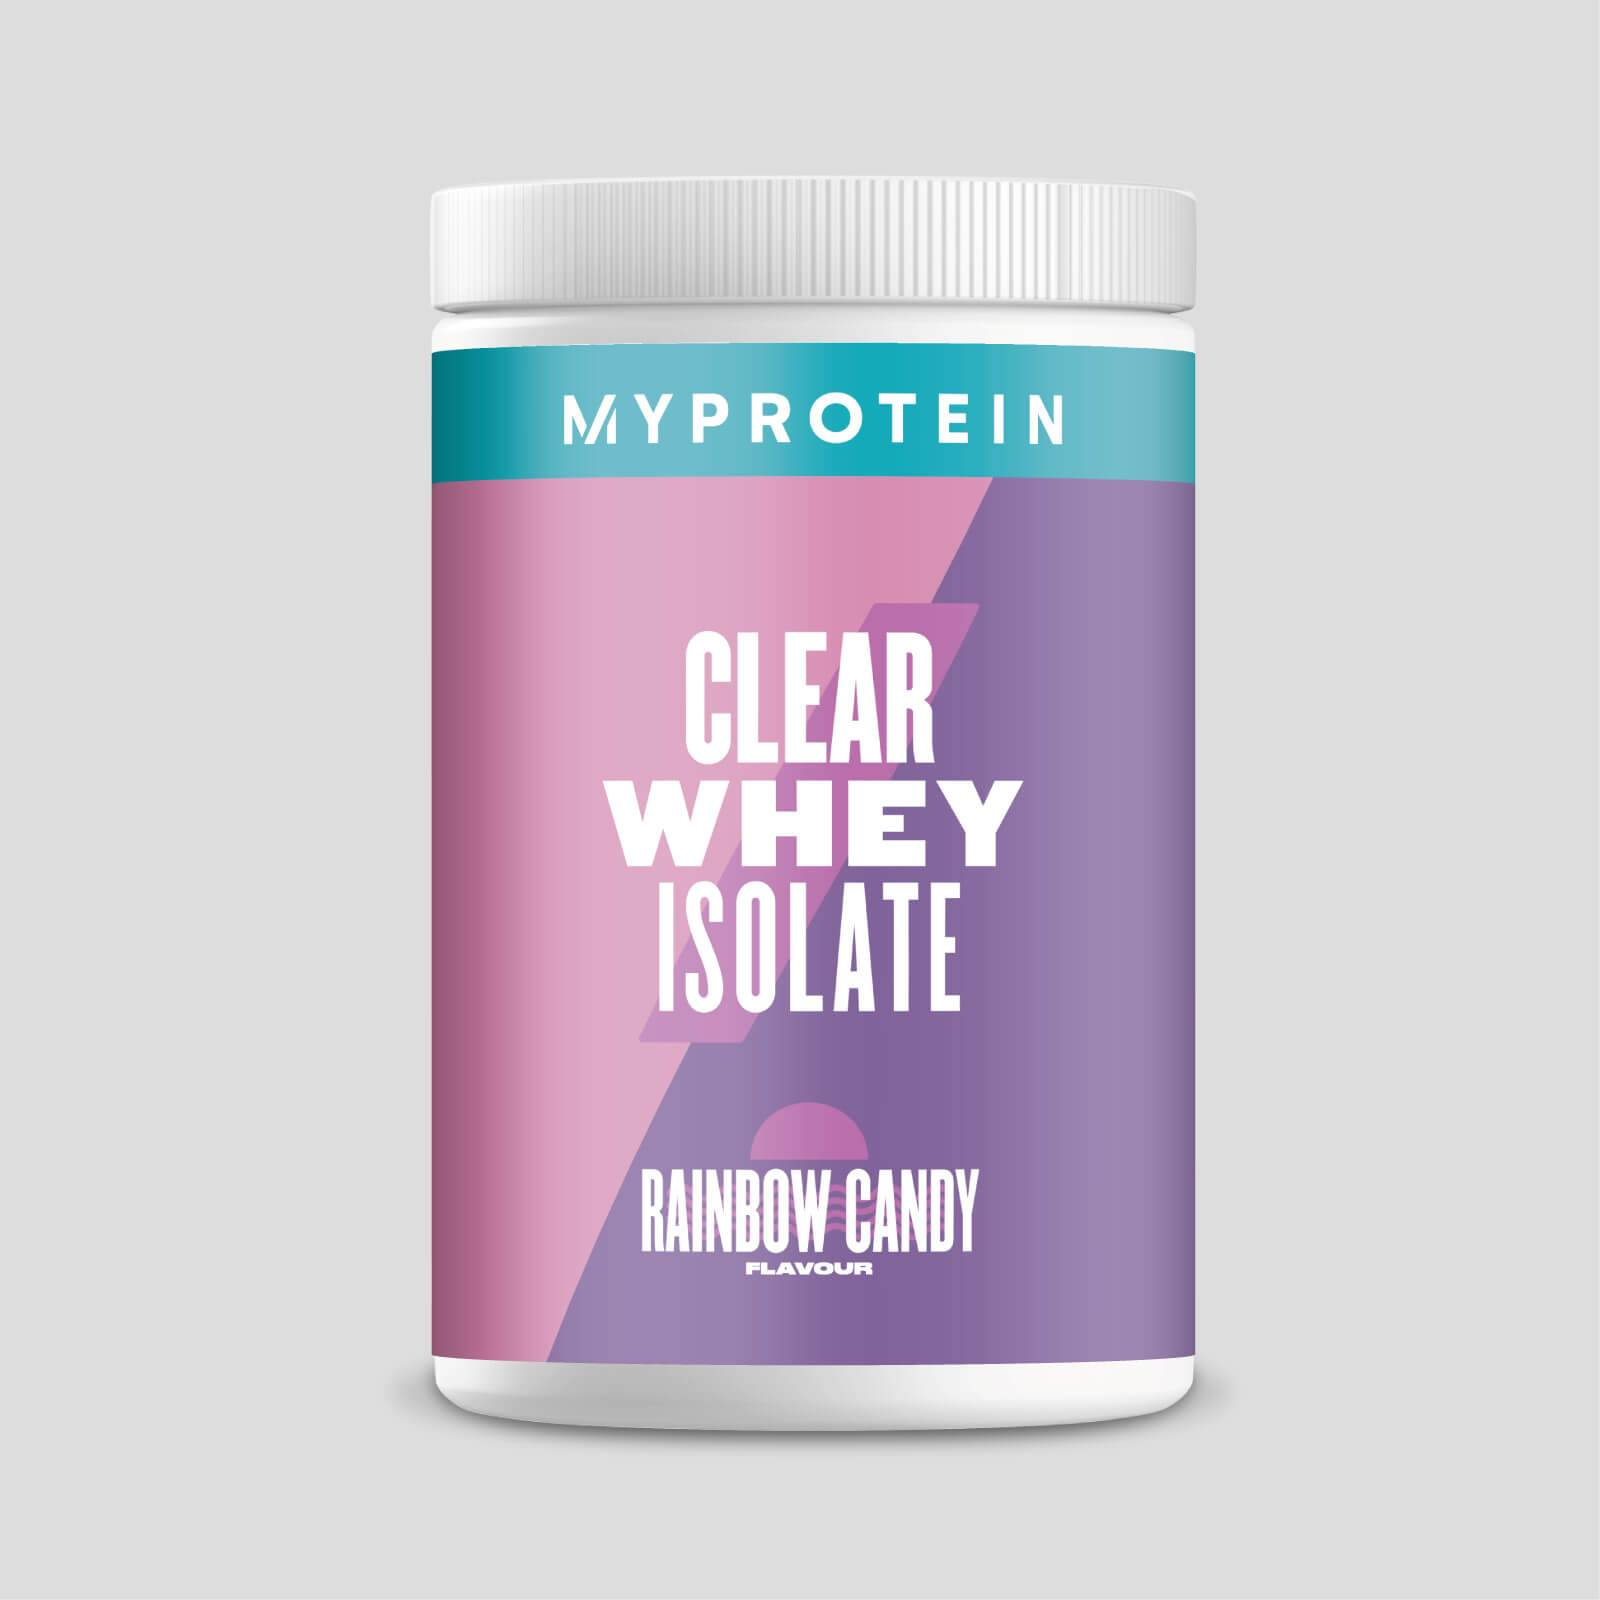 Myprotein Clear Whey Isolate - 20servings - Caramella arcobaleno